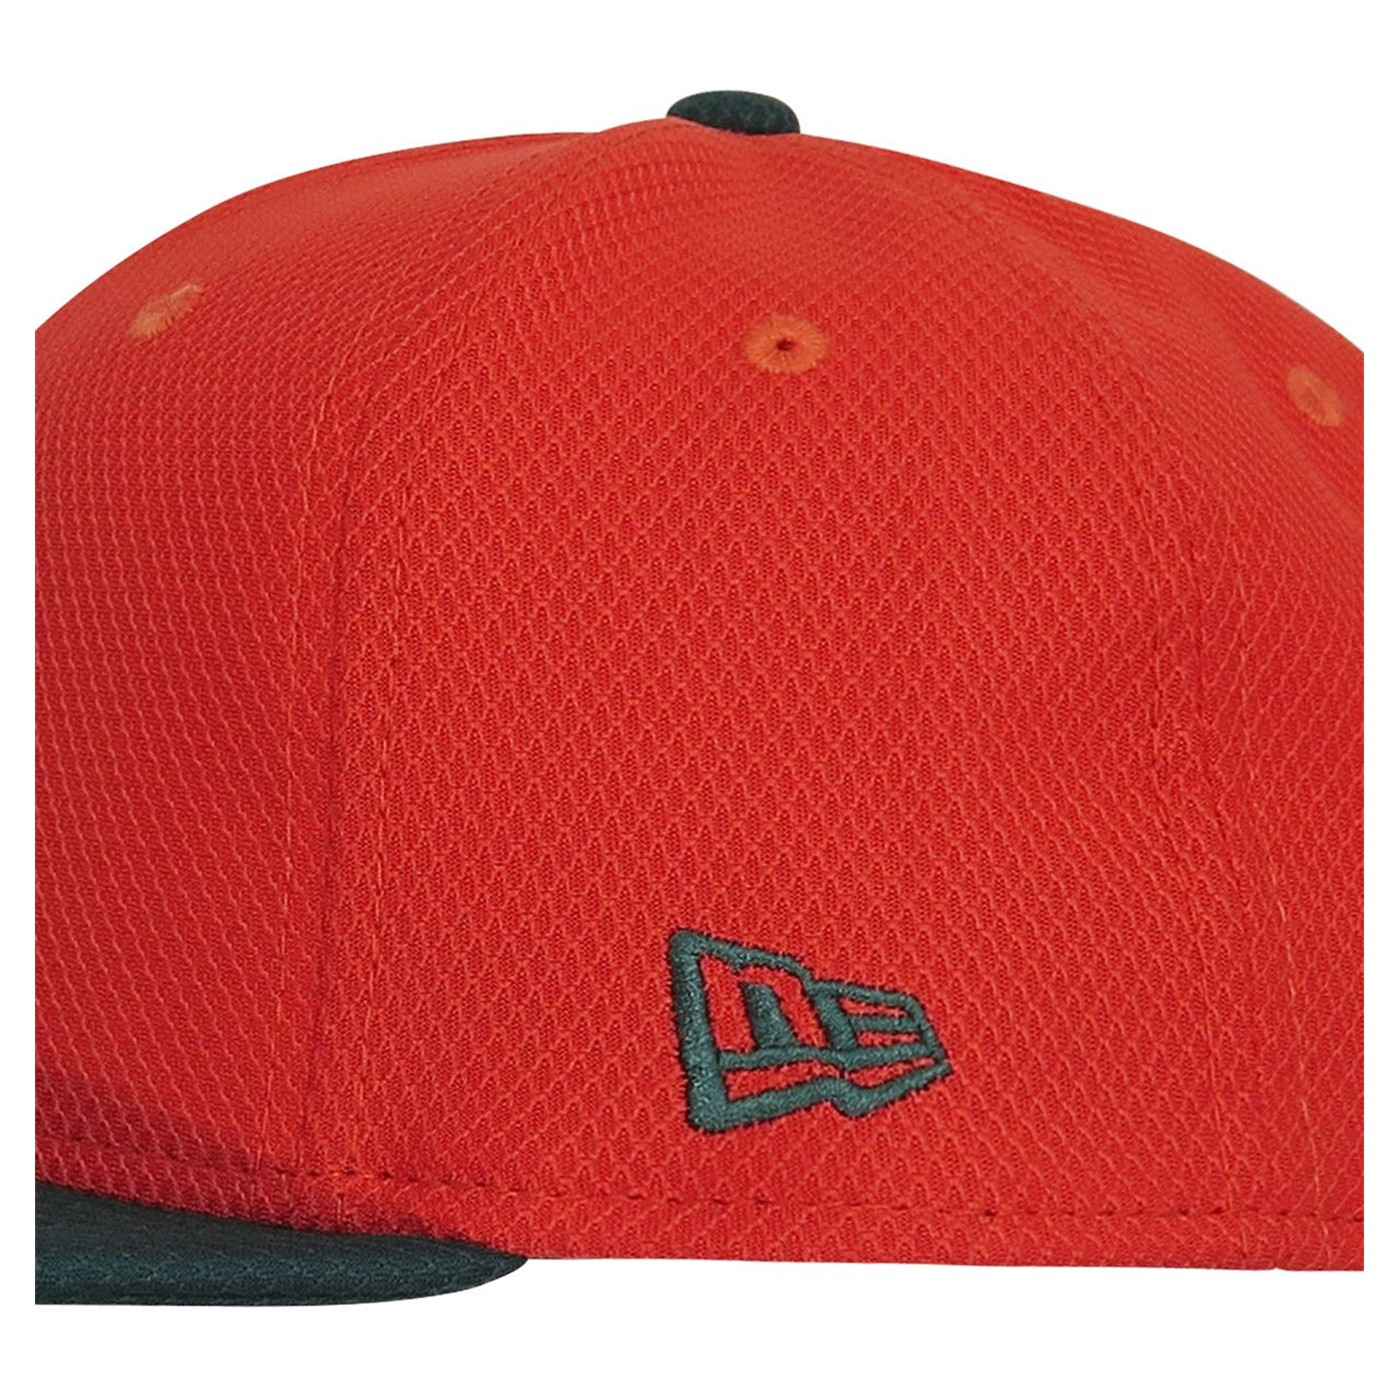 Aquaman Symbol Orange 59Fifty Fitted Hat